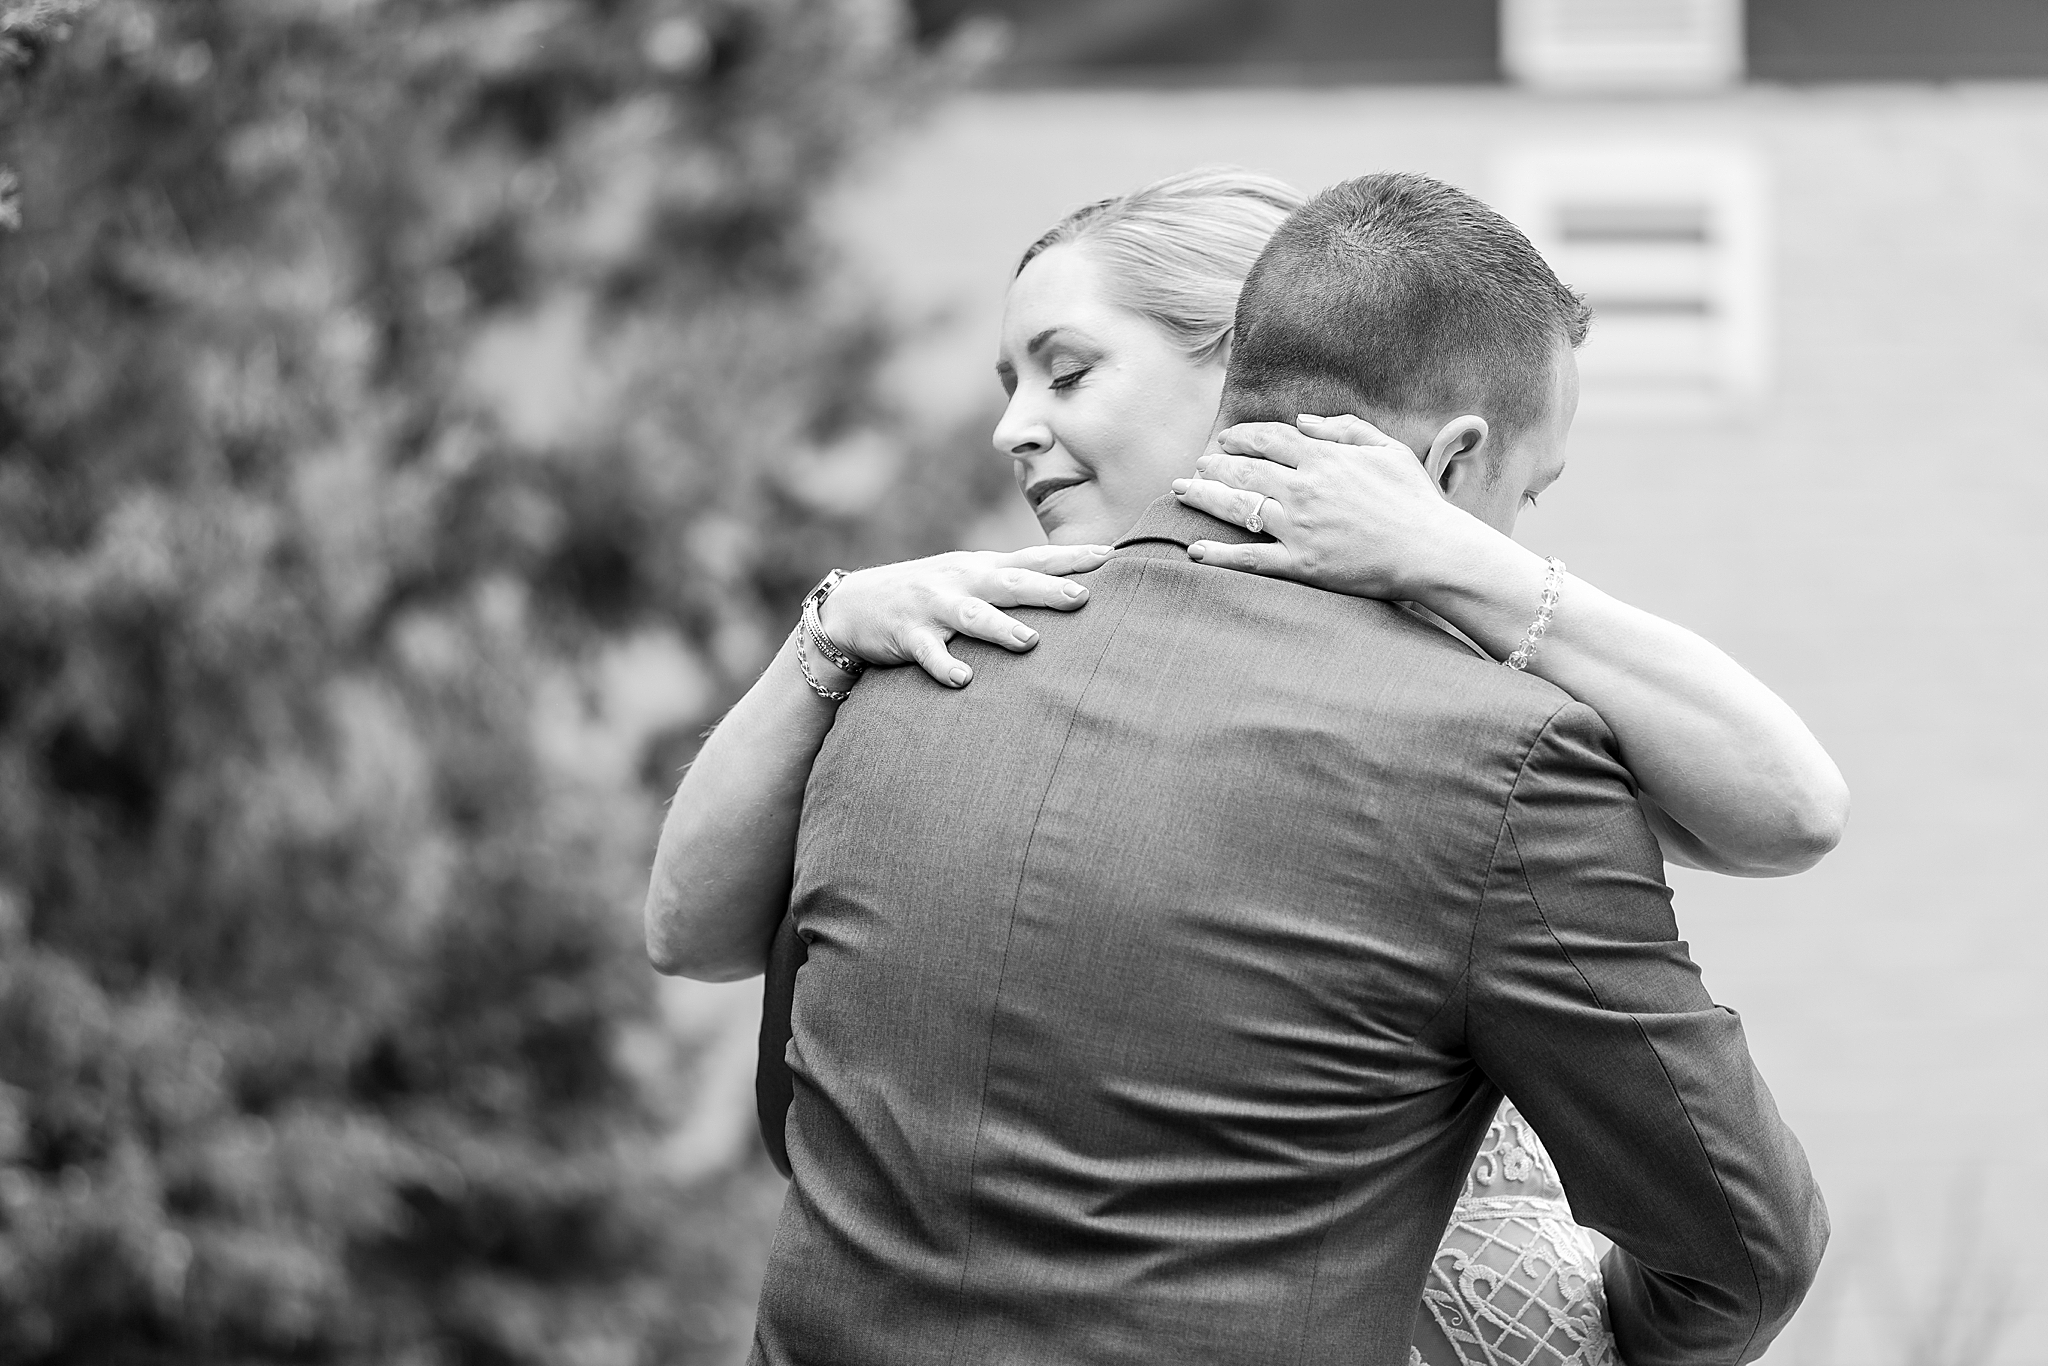 modern-romantic-wedding-photography-at-webers-in-ann-arbor-michigan-by-courtney-carolyn-photography_0021.jpg